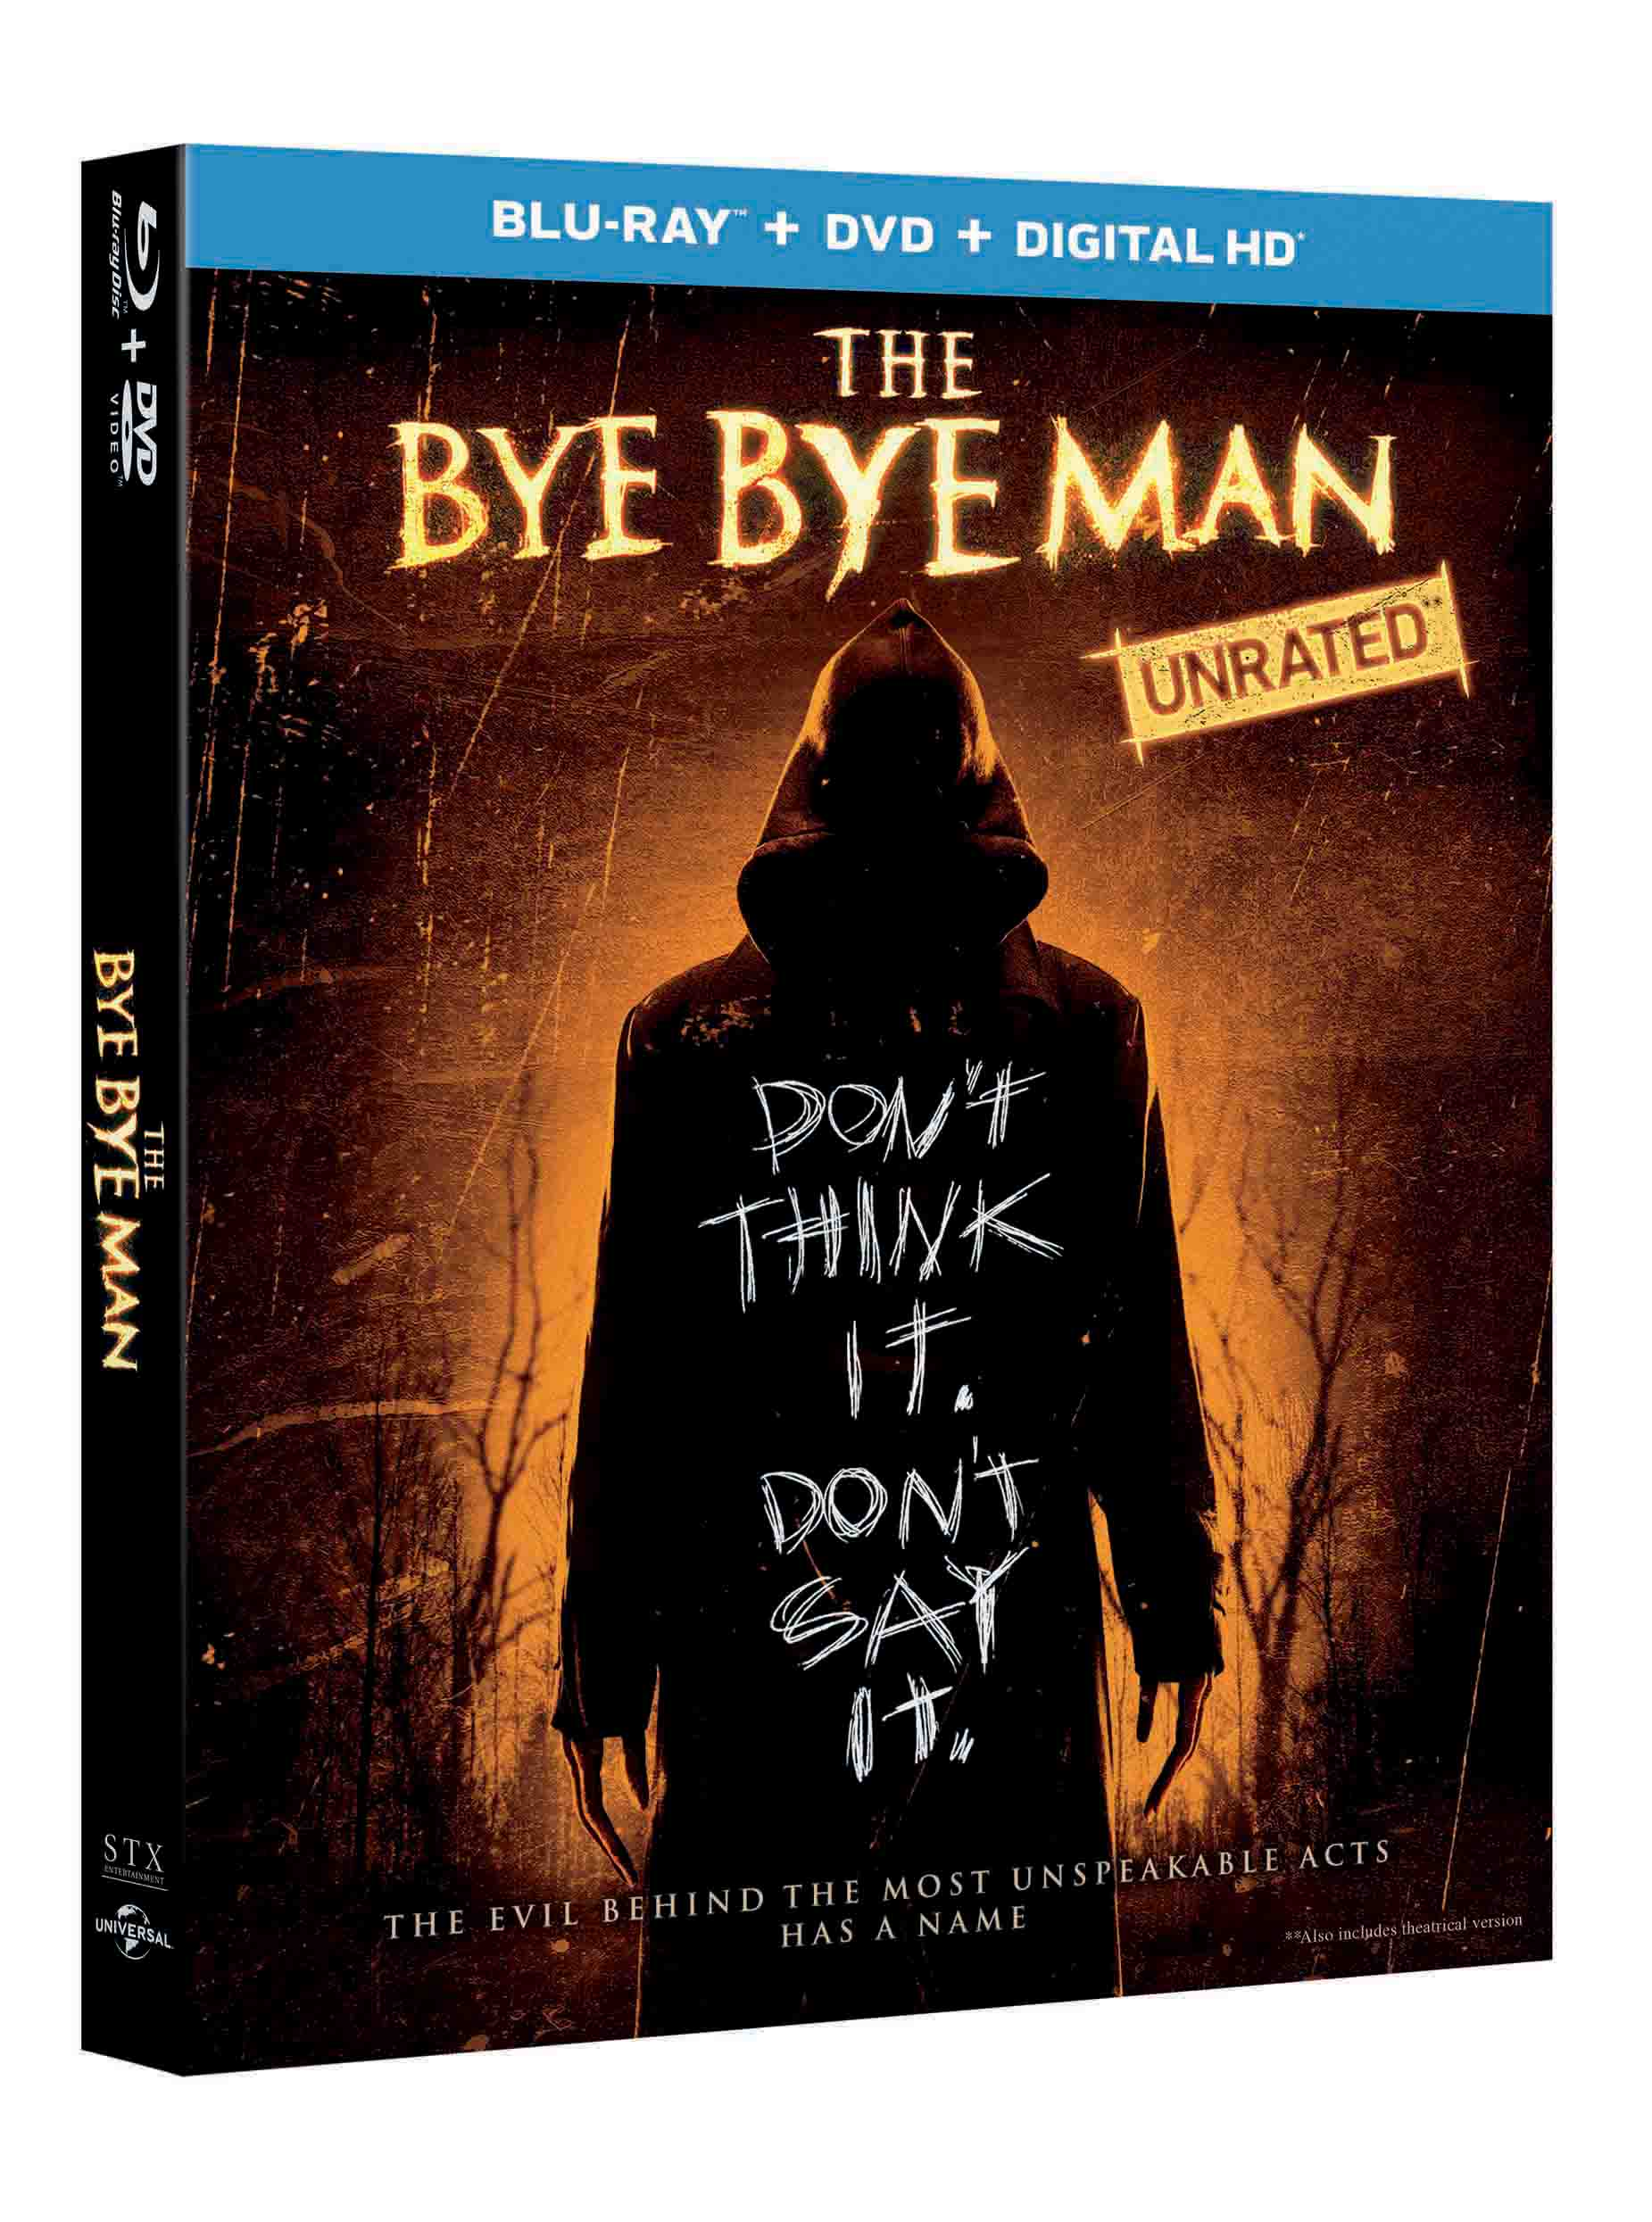 We Chat With The Bye Bye Man Director Stacy Title and Writer Jonathan Penner